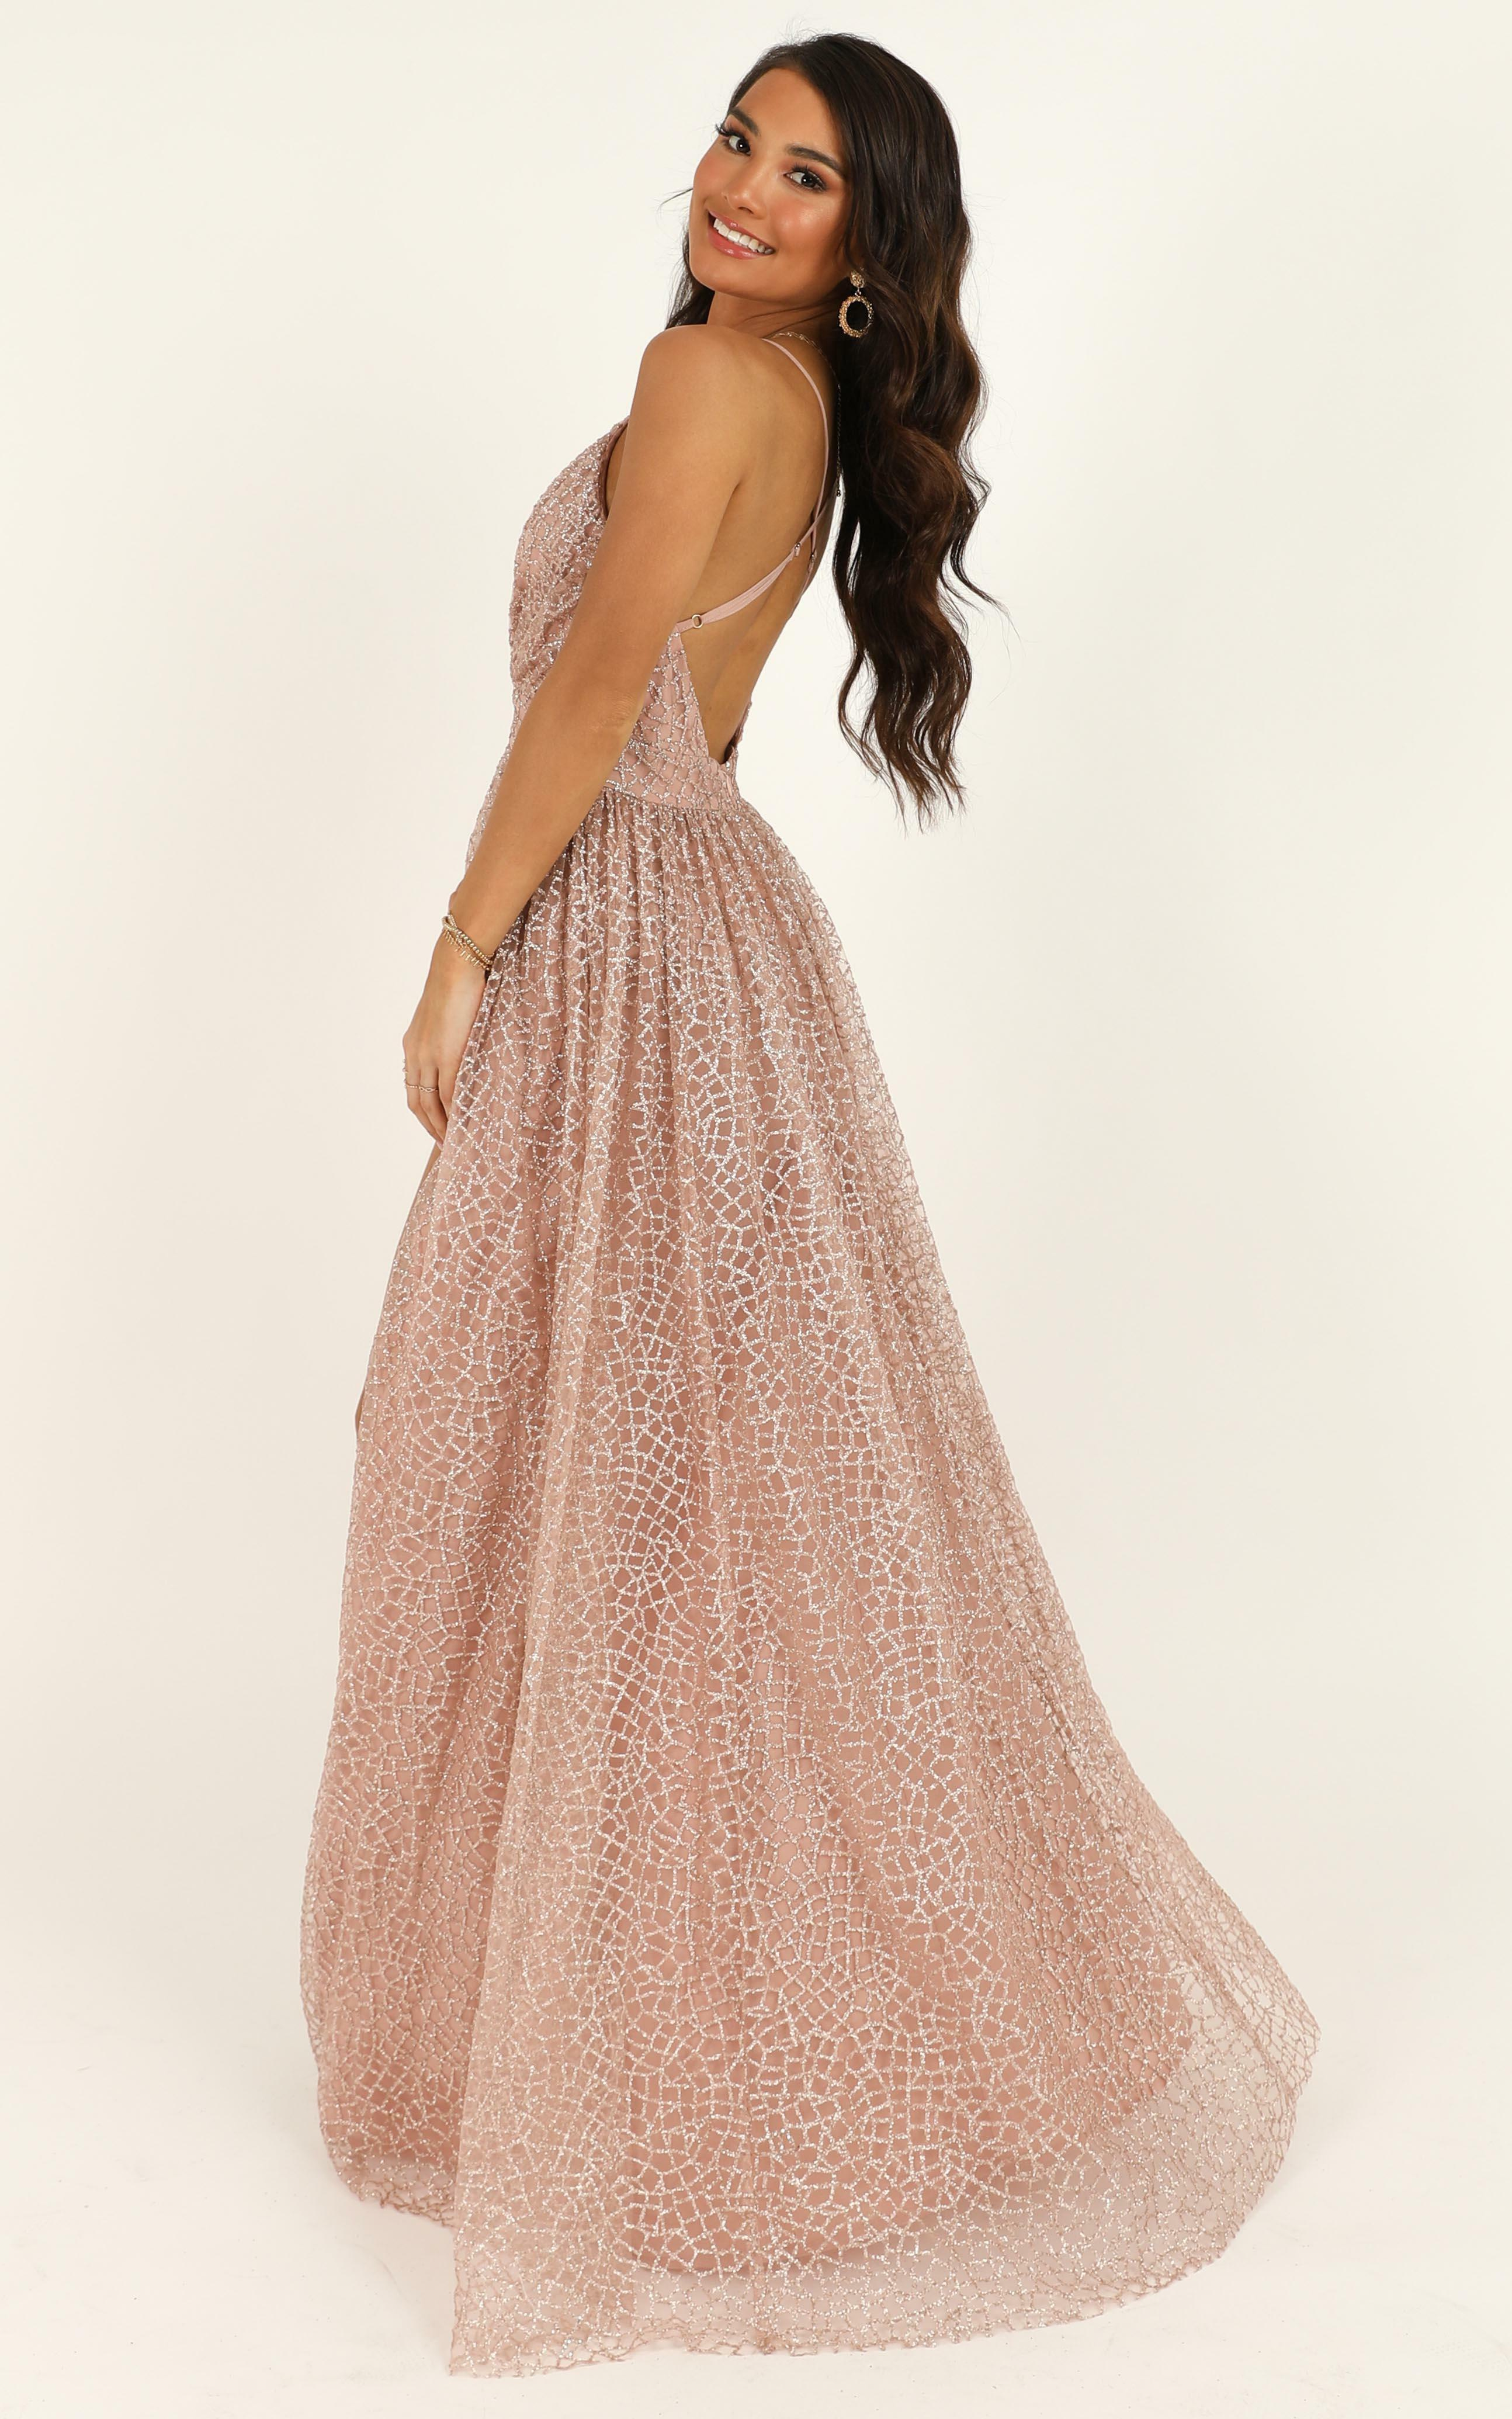 Lady Godiva Dress in rose gold glitter - 14 (XL), Gold, hi-res image number null